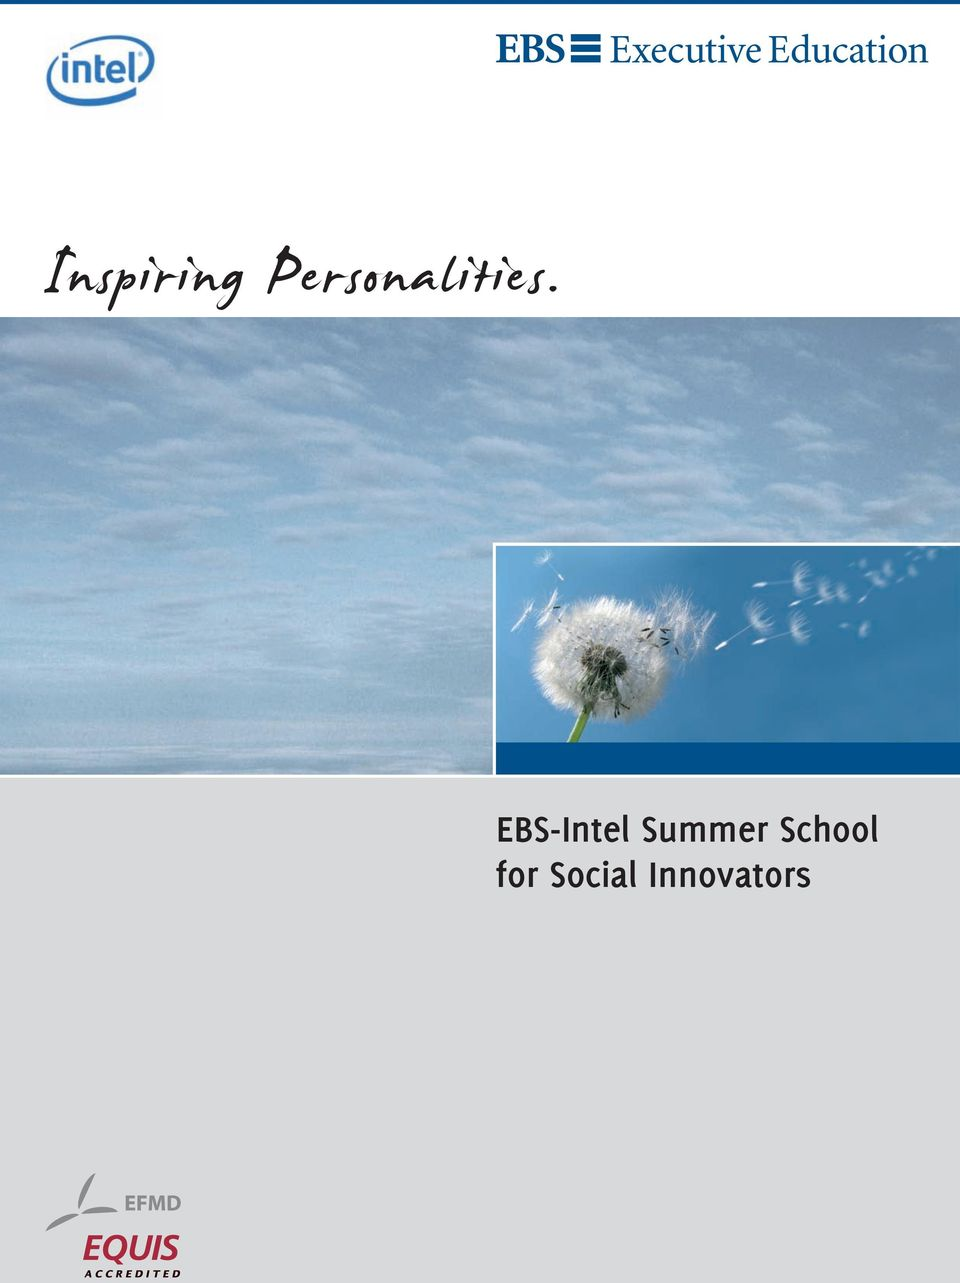 EBS-Intel Summer